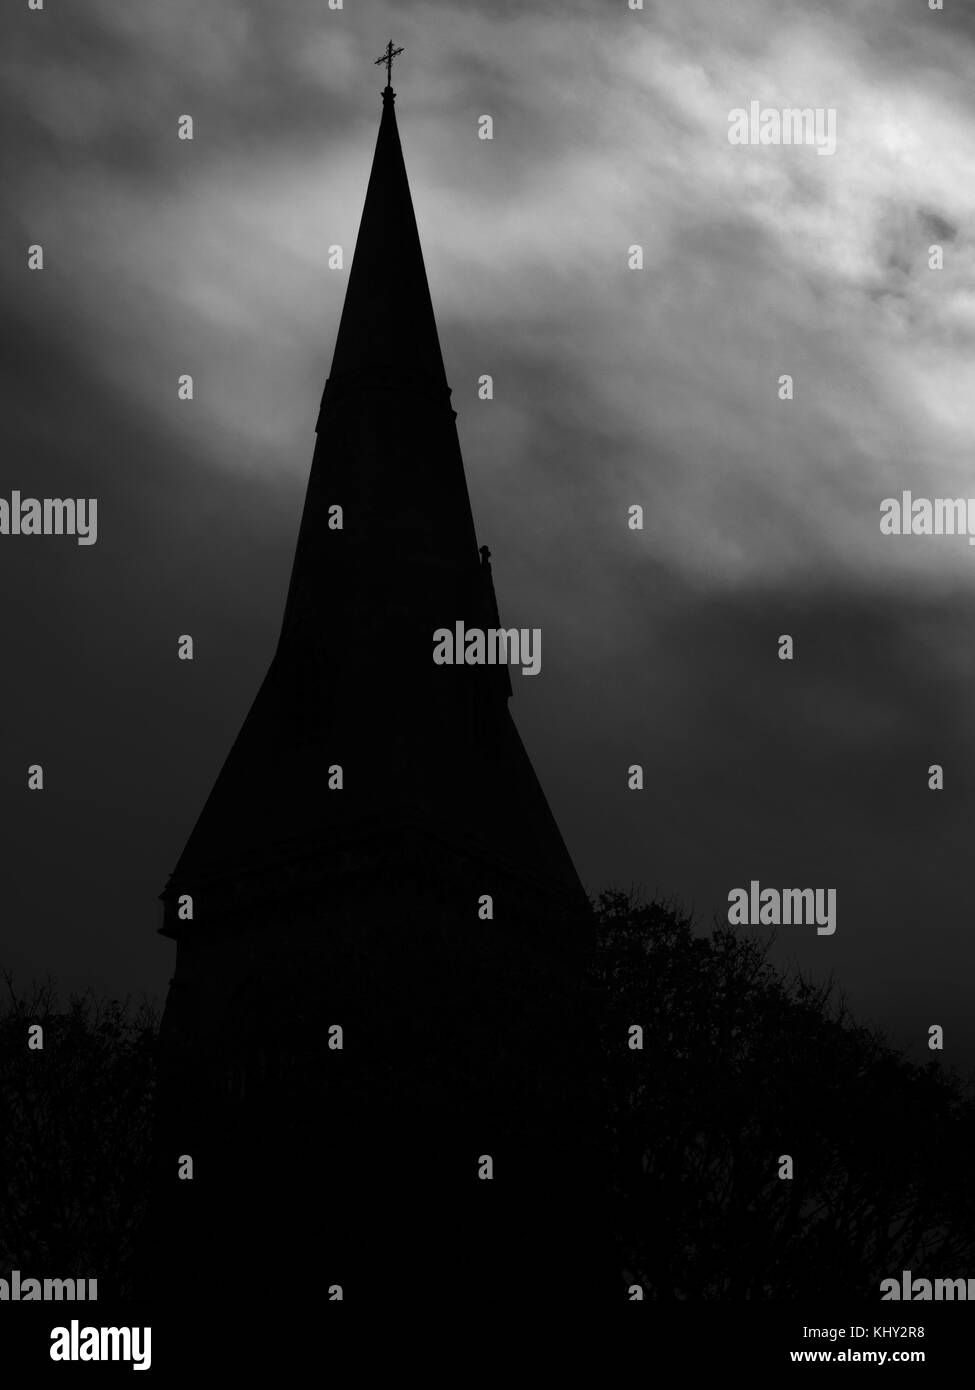 Silhouette of a Church Spire against a Dark Cloudy Sky - Stock Image